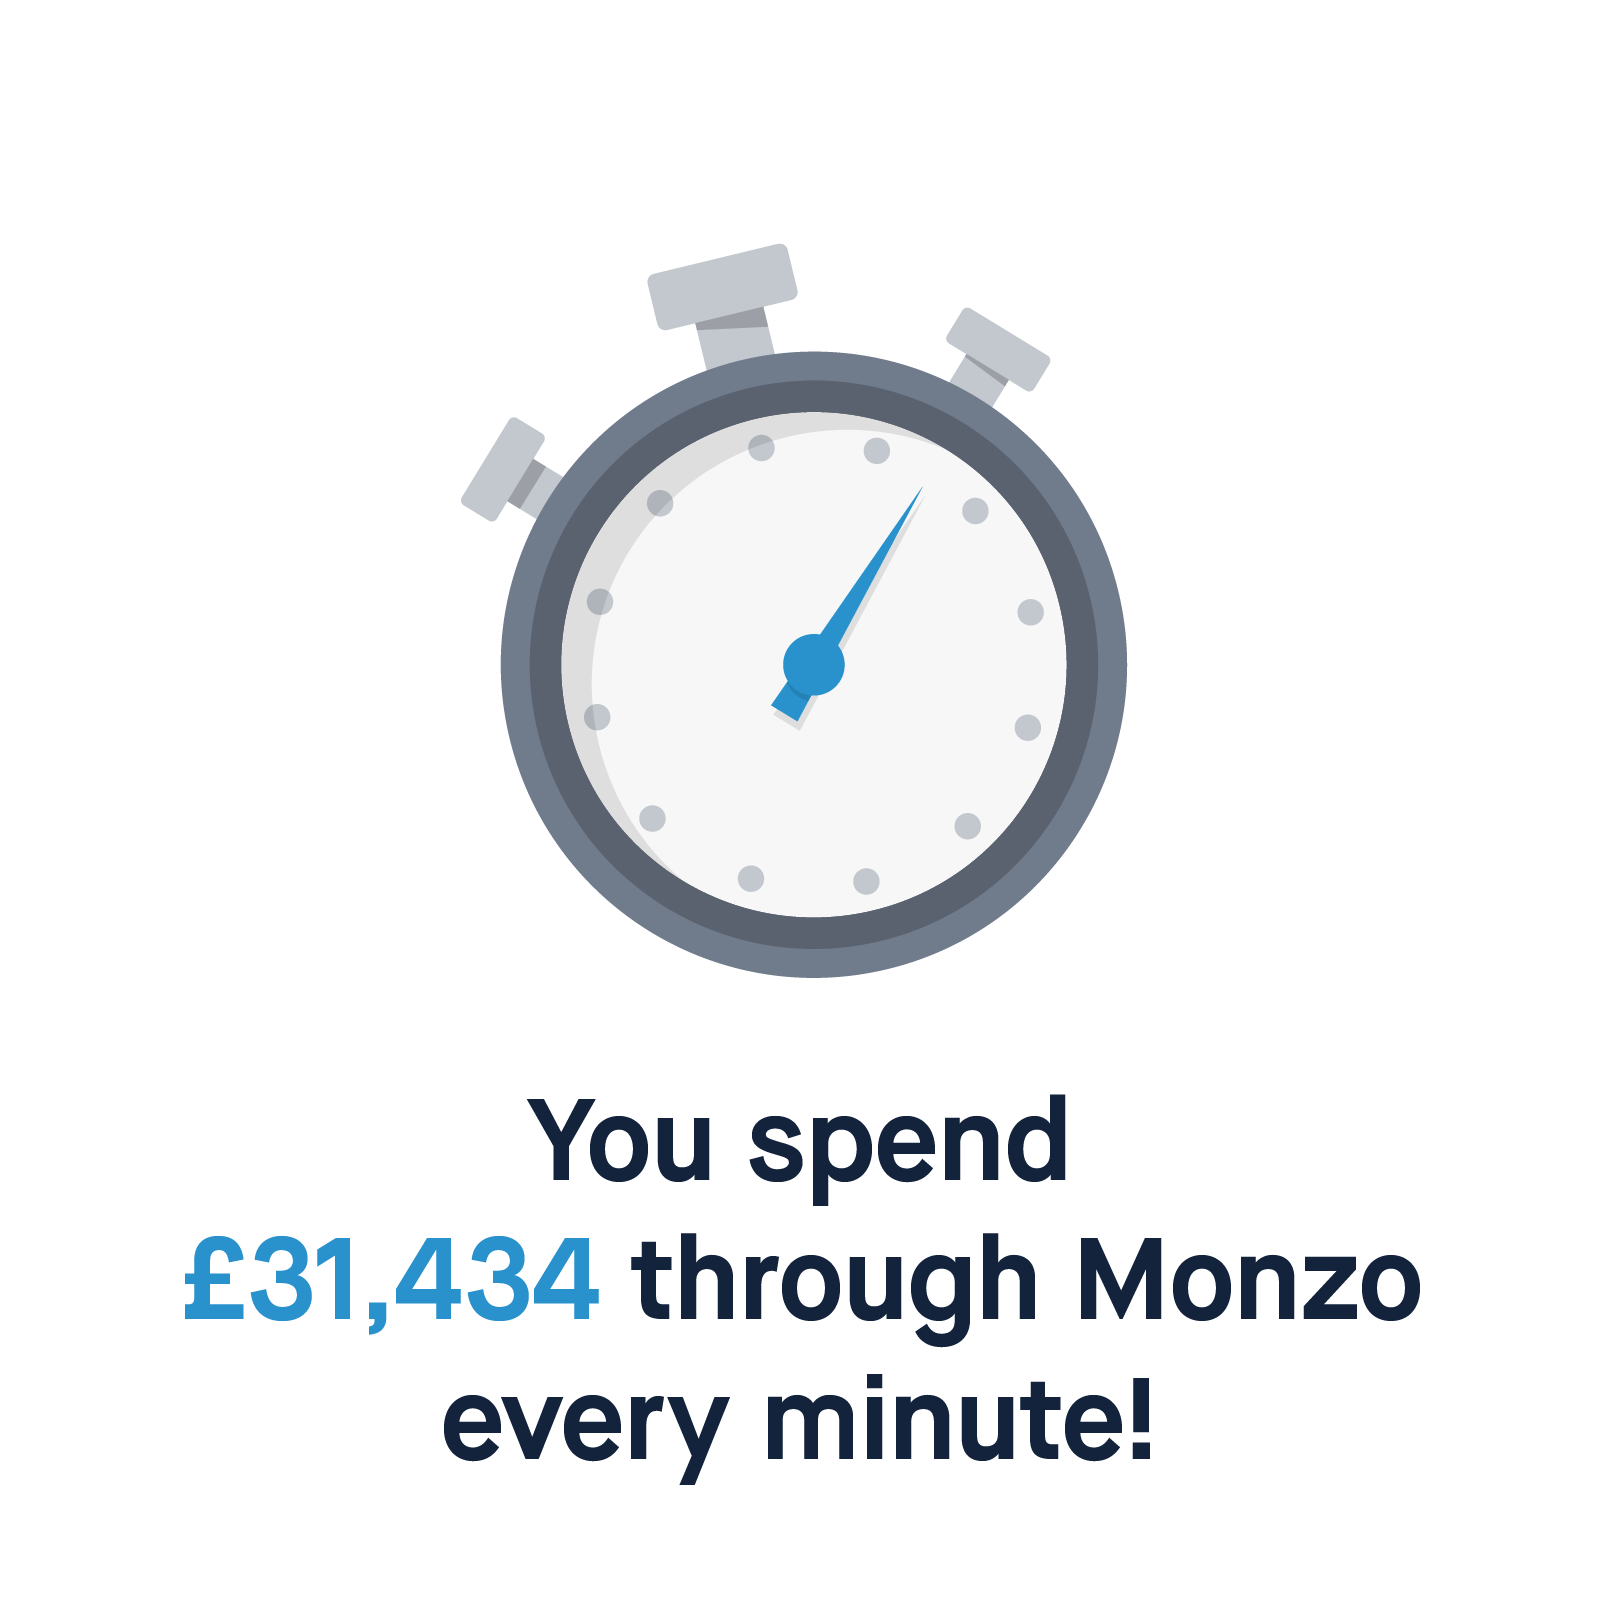 You spend £31,434 through Monzo every minute!